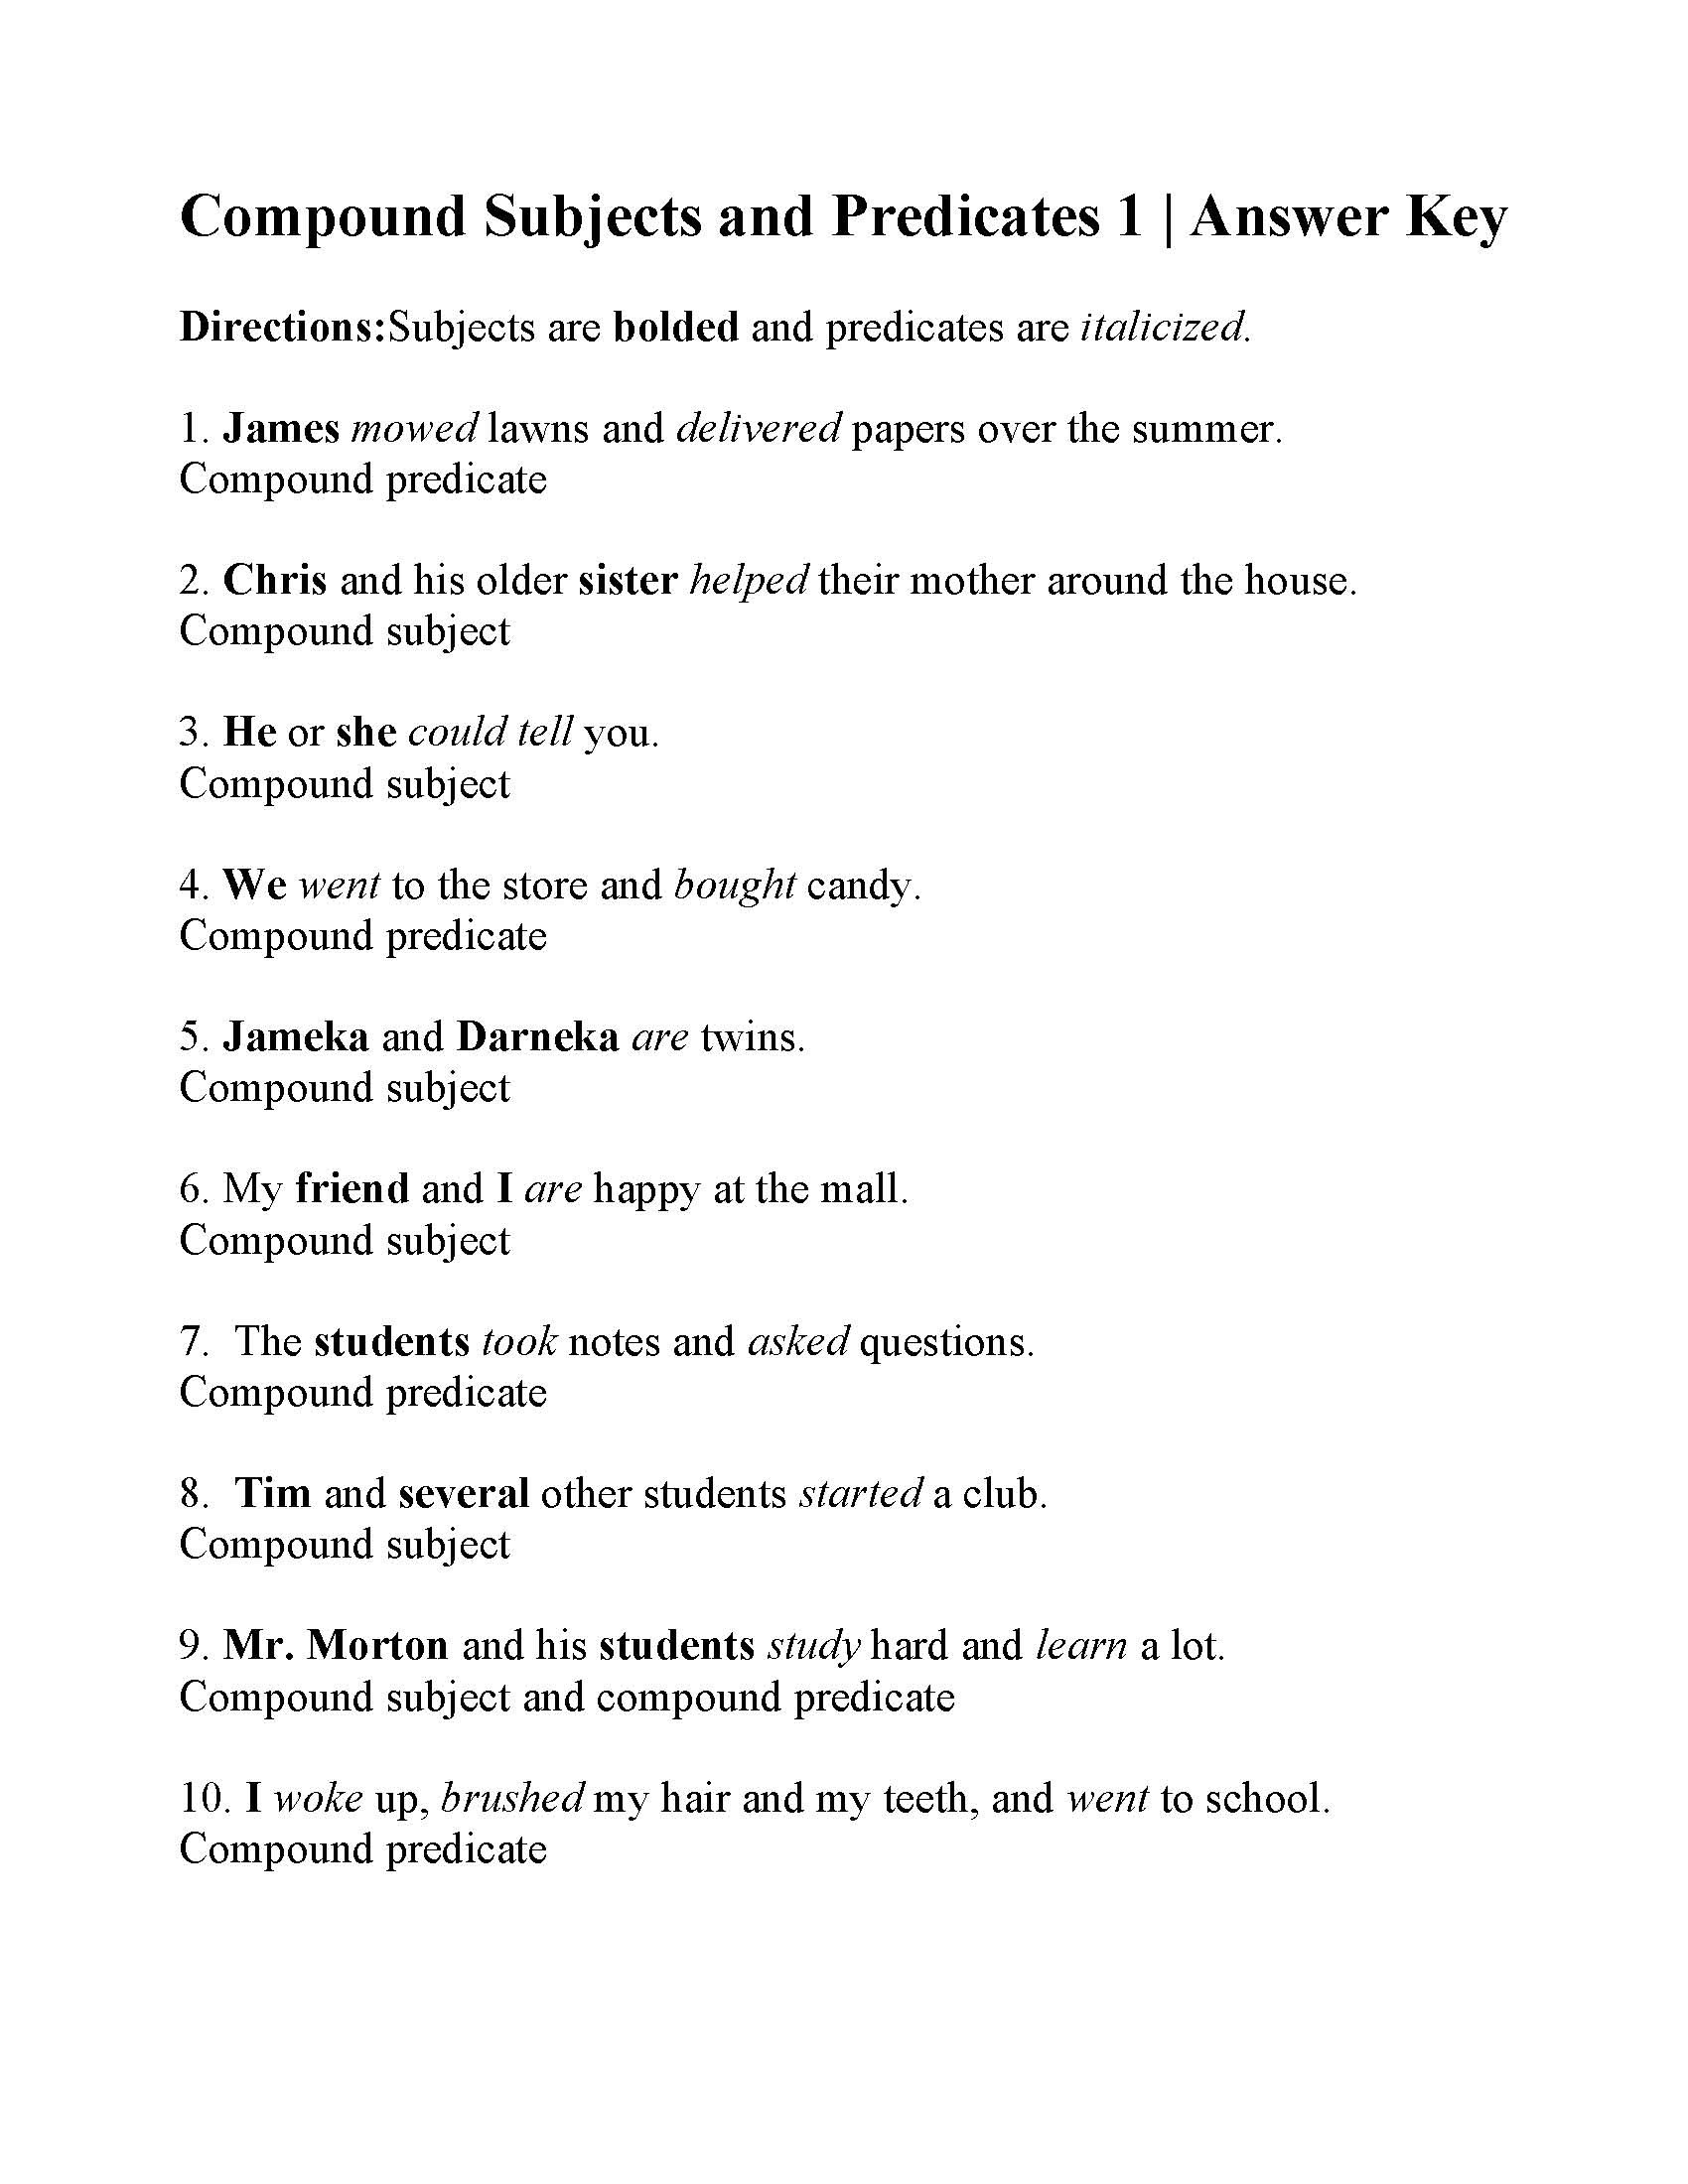 Compound Sentences Worksheet with Answers Pound Subjects and Predicates Worksheet